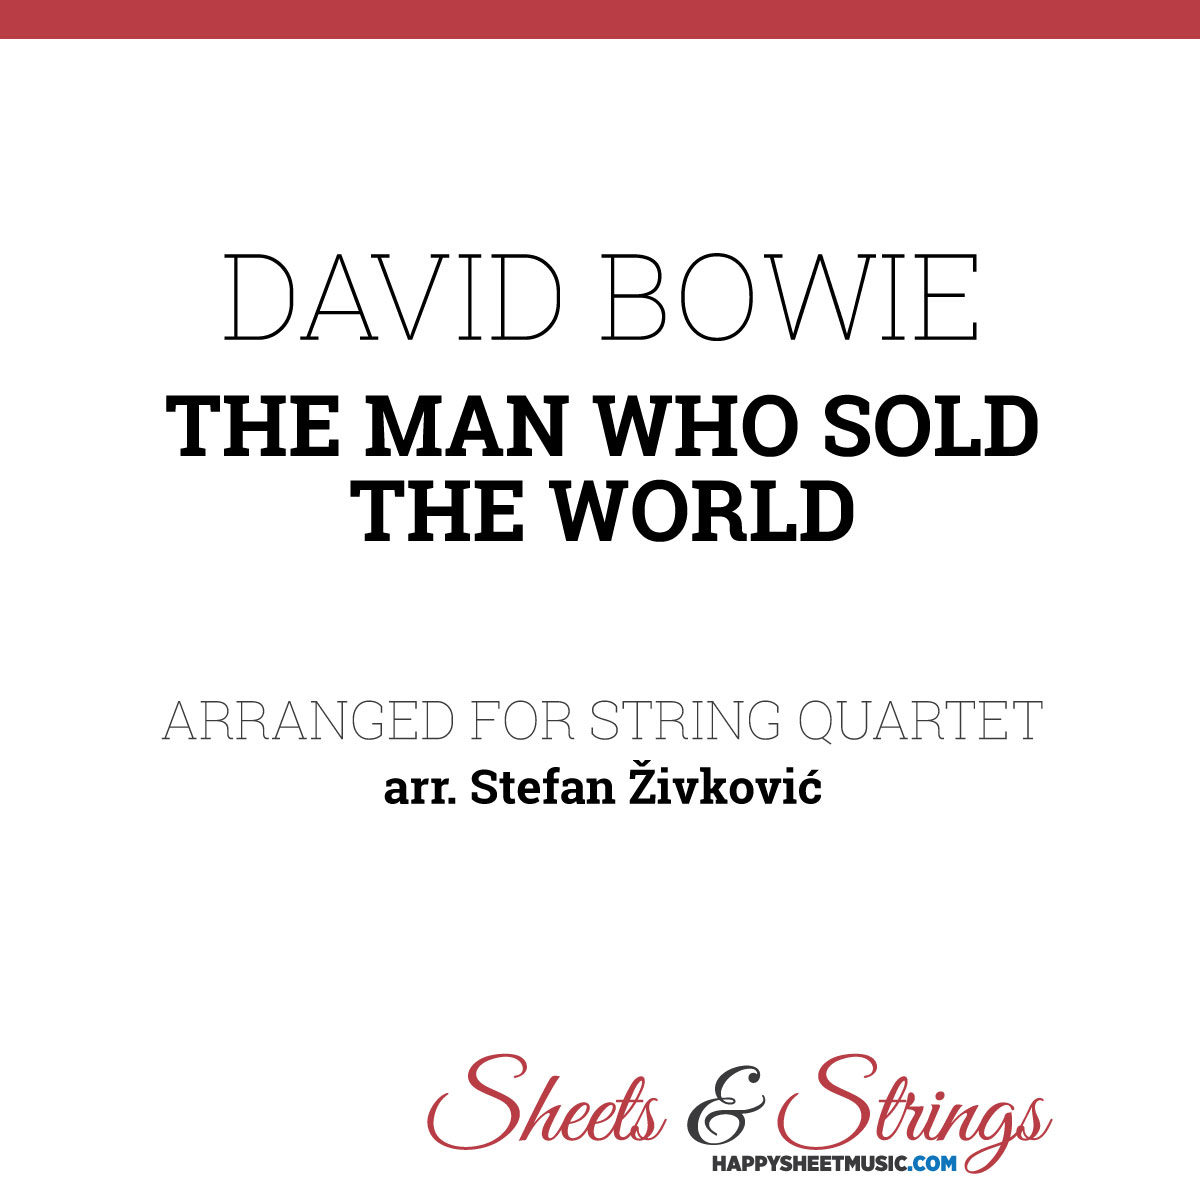 David Bowie - The man who sold the world - Sheet Music for String Quartet